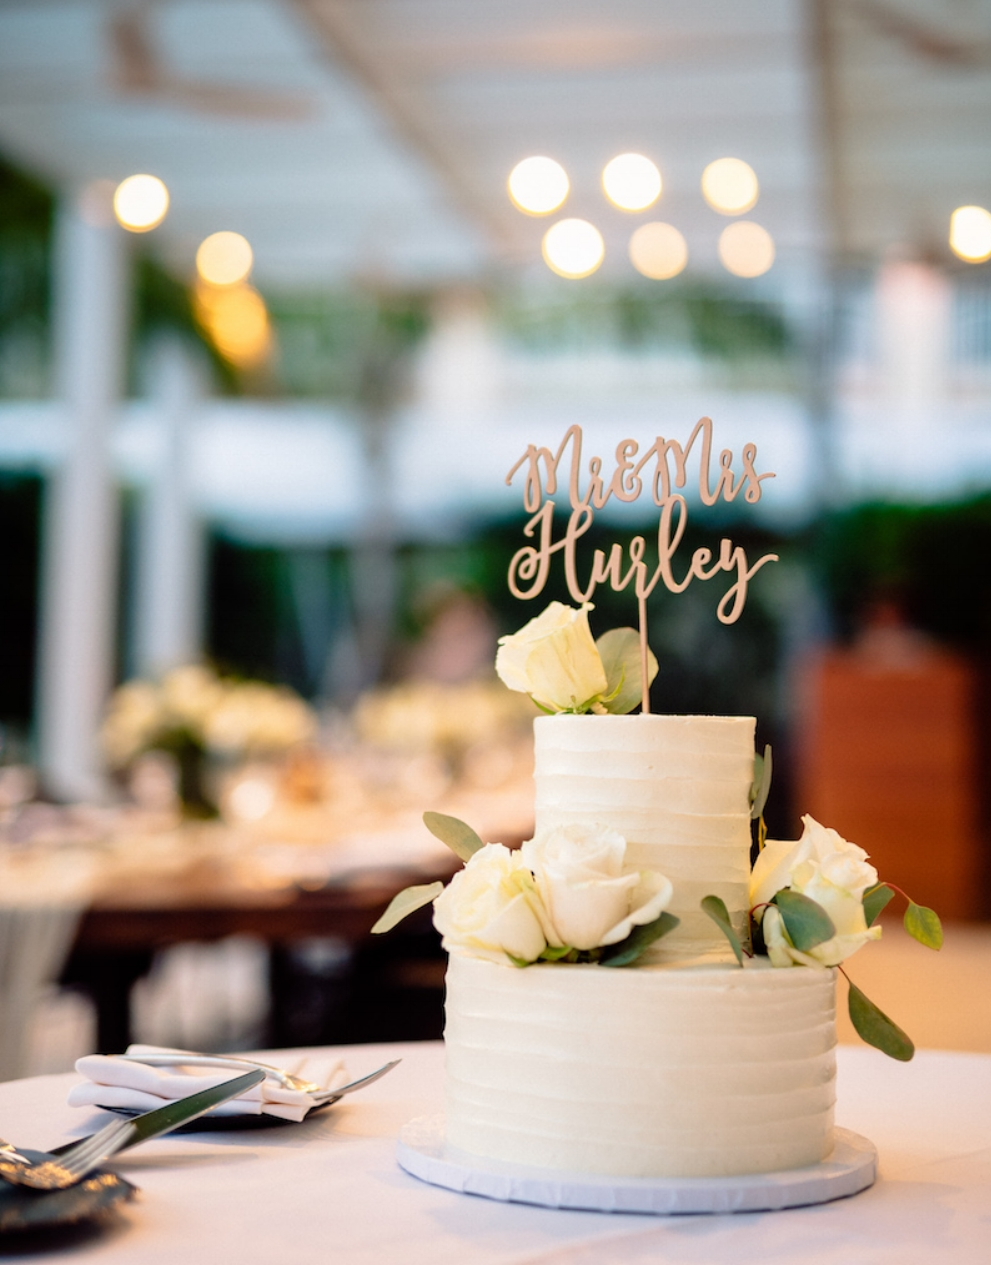 Marco Island Beach Wedding Reception JW Marriott Matt Steeves Sweetified Bakery.jpg